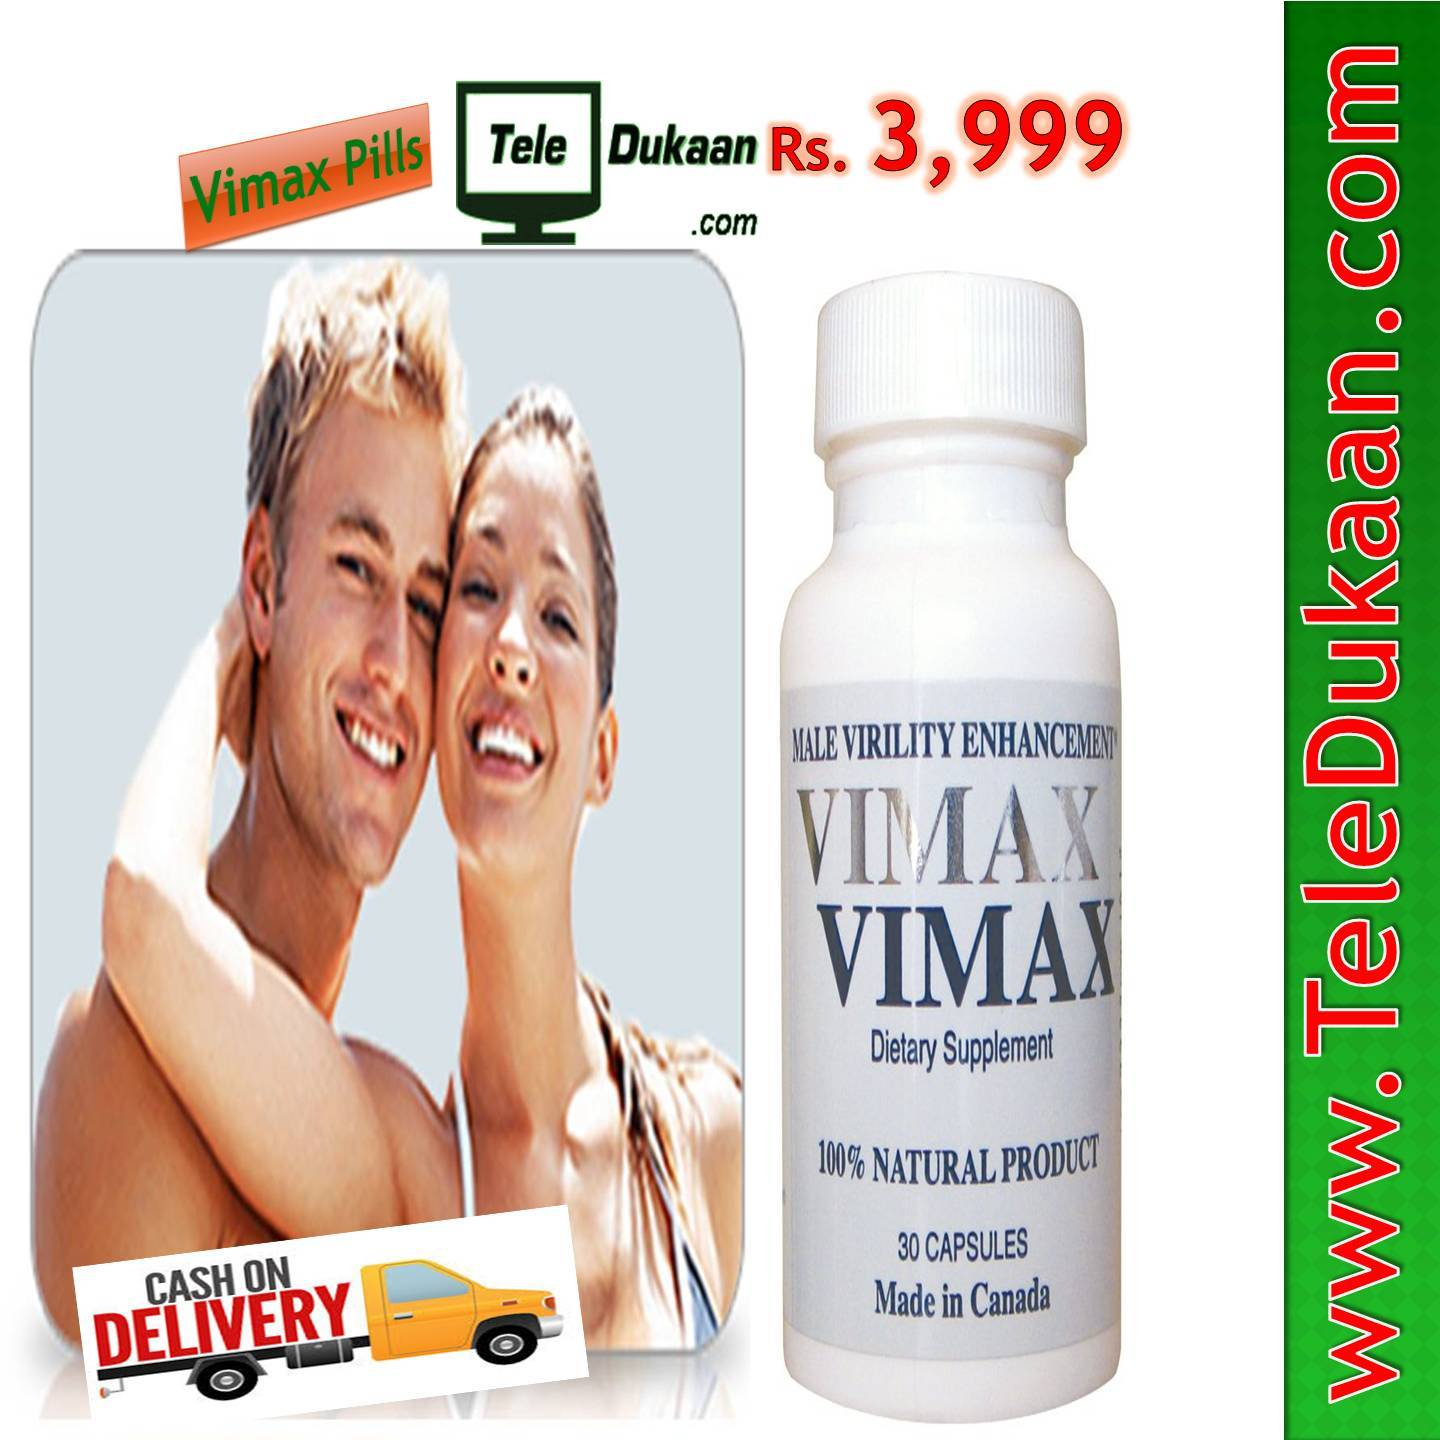 Vimax in Pakistan